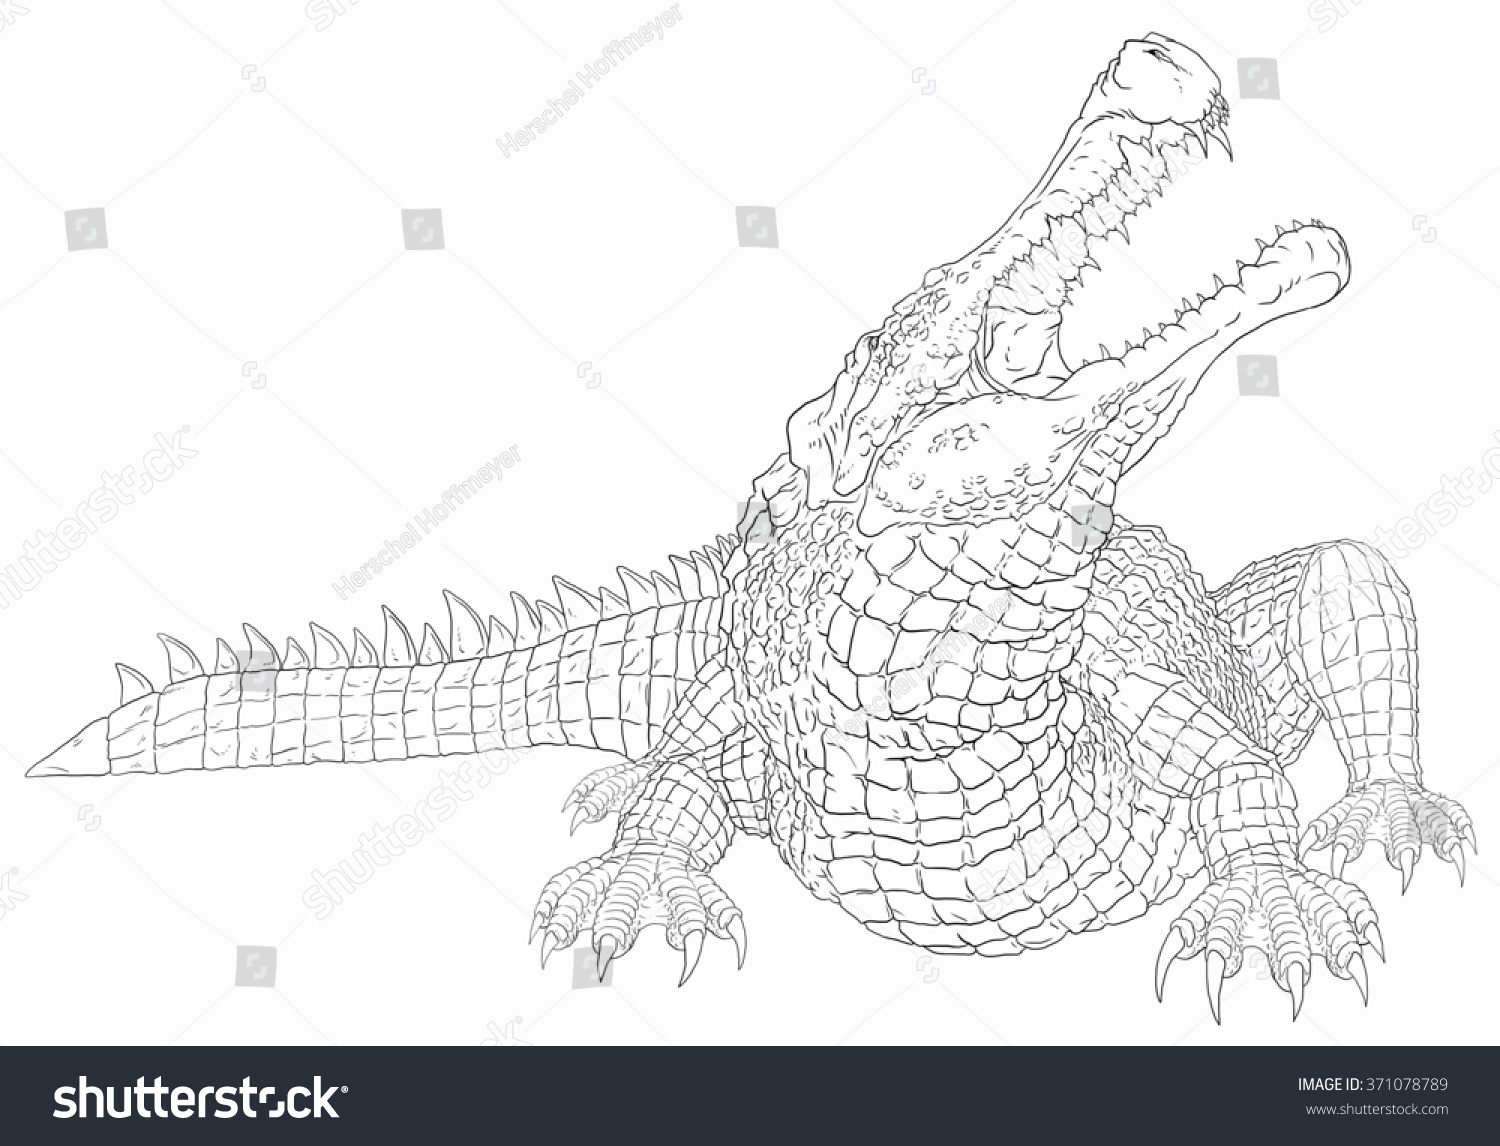 Sarcosuchus line drawing coloring books illustration libre for Carcharodontosaurus coloring page